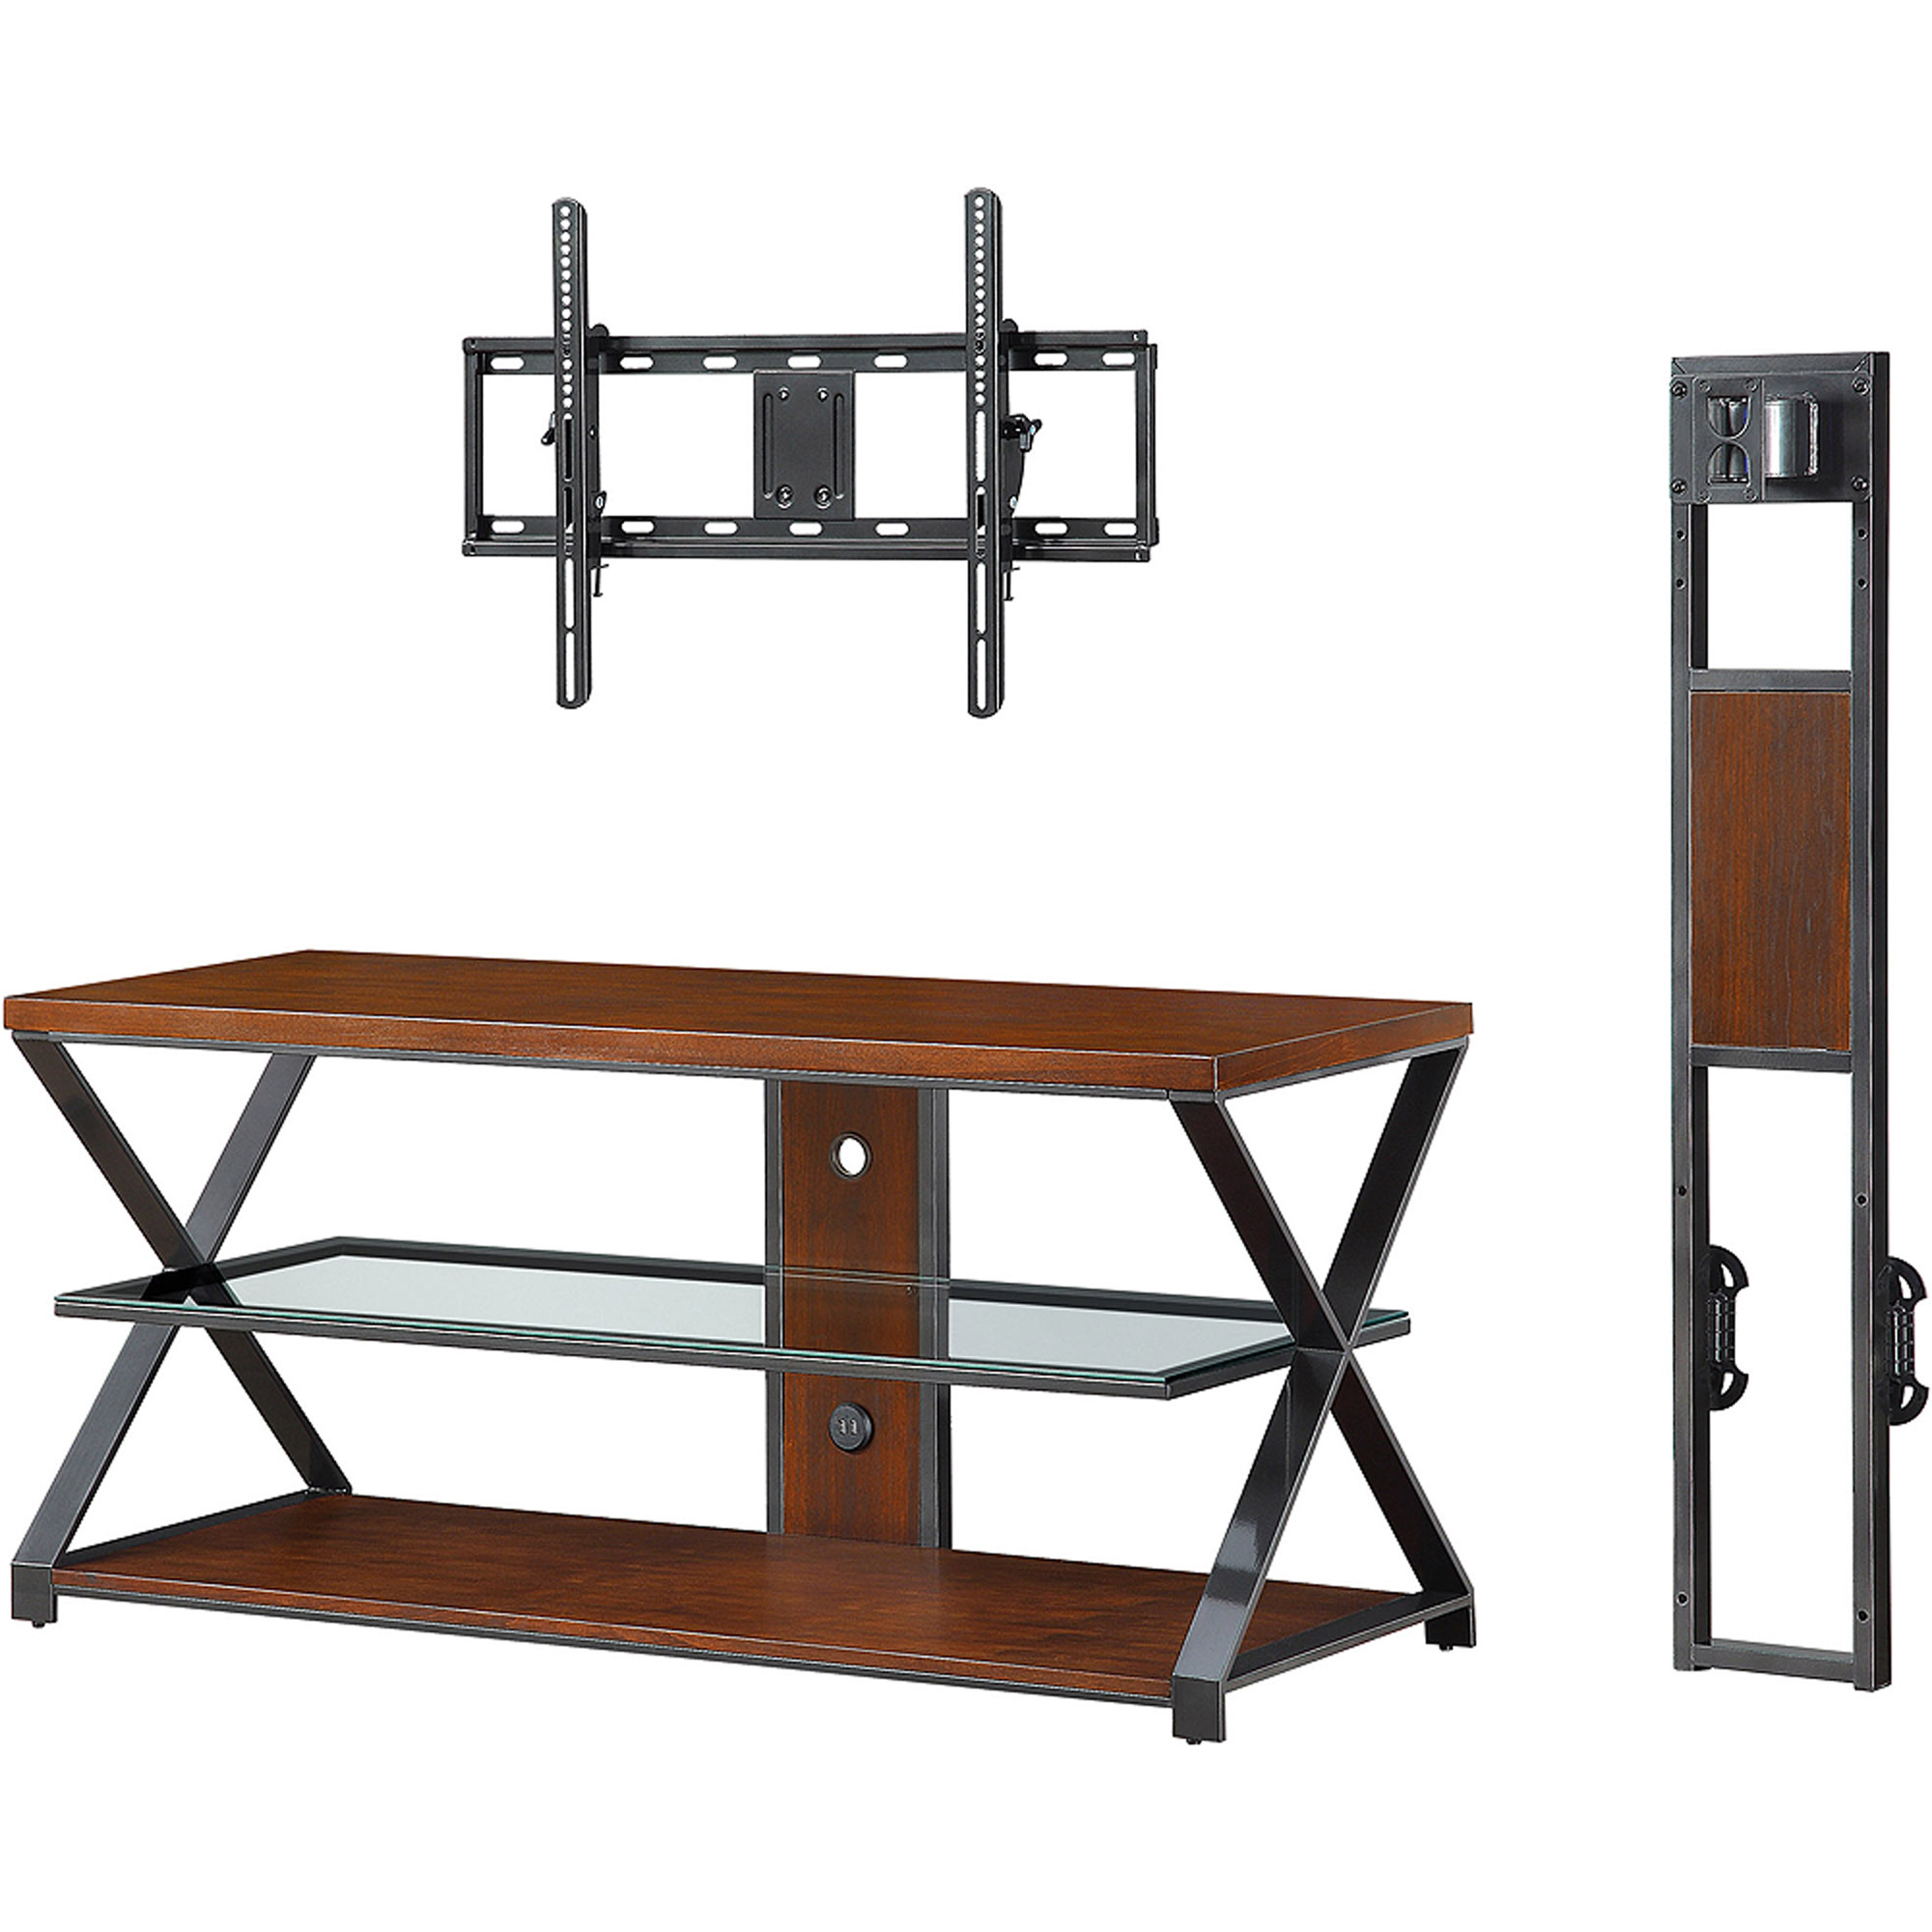 Sarah Tv Stands: Jaxon 3 In 1 Cognac Tv Stand For Tvs Up To 70'' Throughout Jaxon 65 Inch Tv Stands (View 4 of 20)